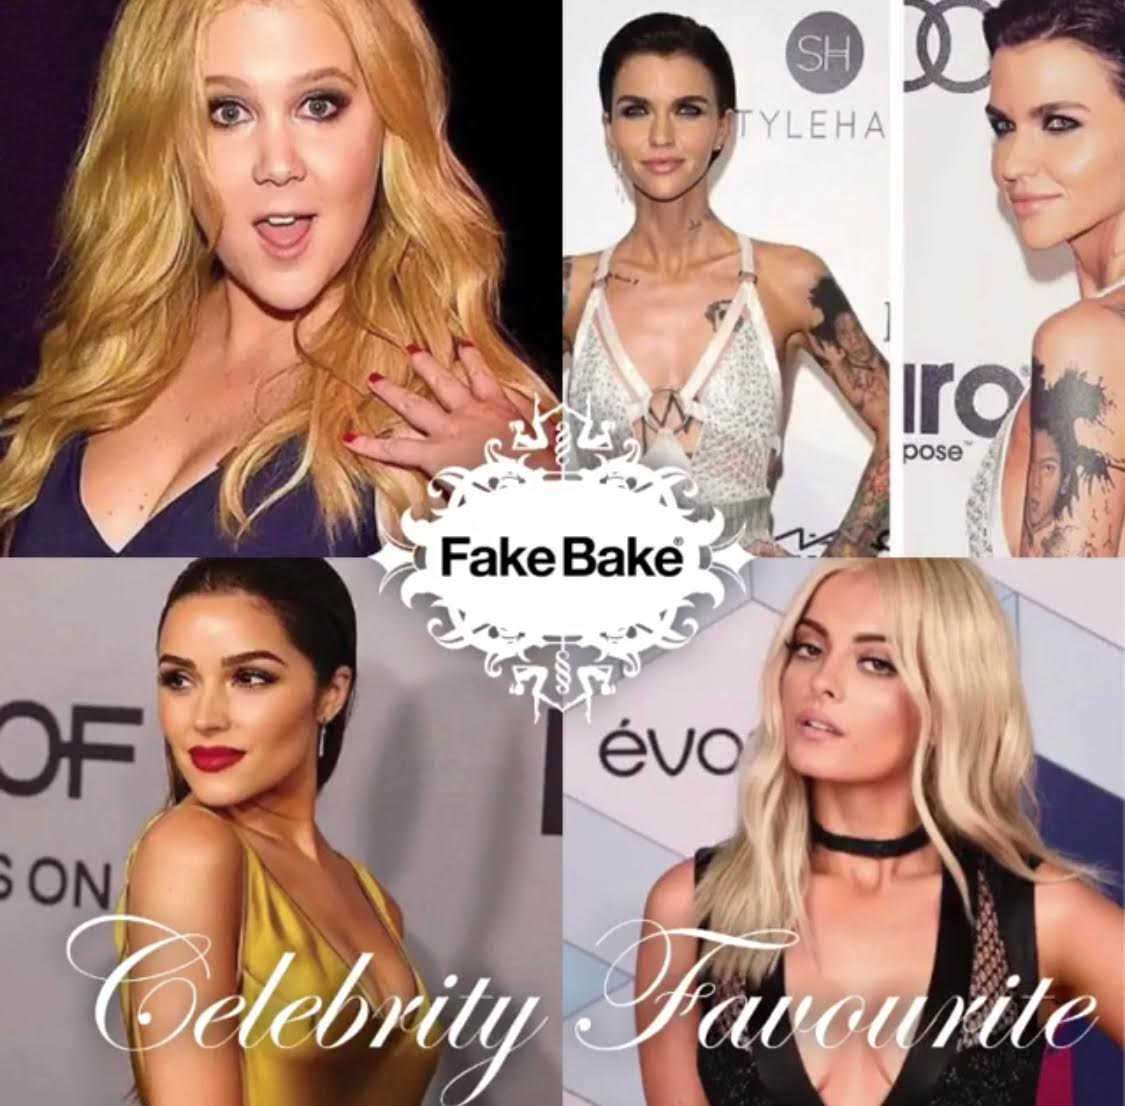 celebrity-favourite-collage.jpg